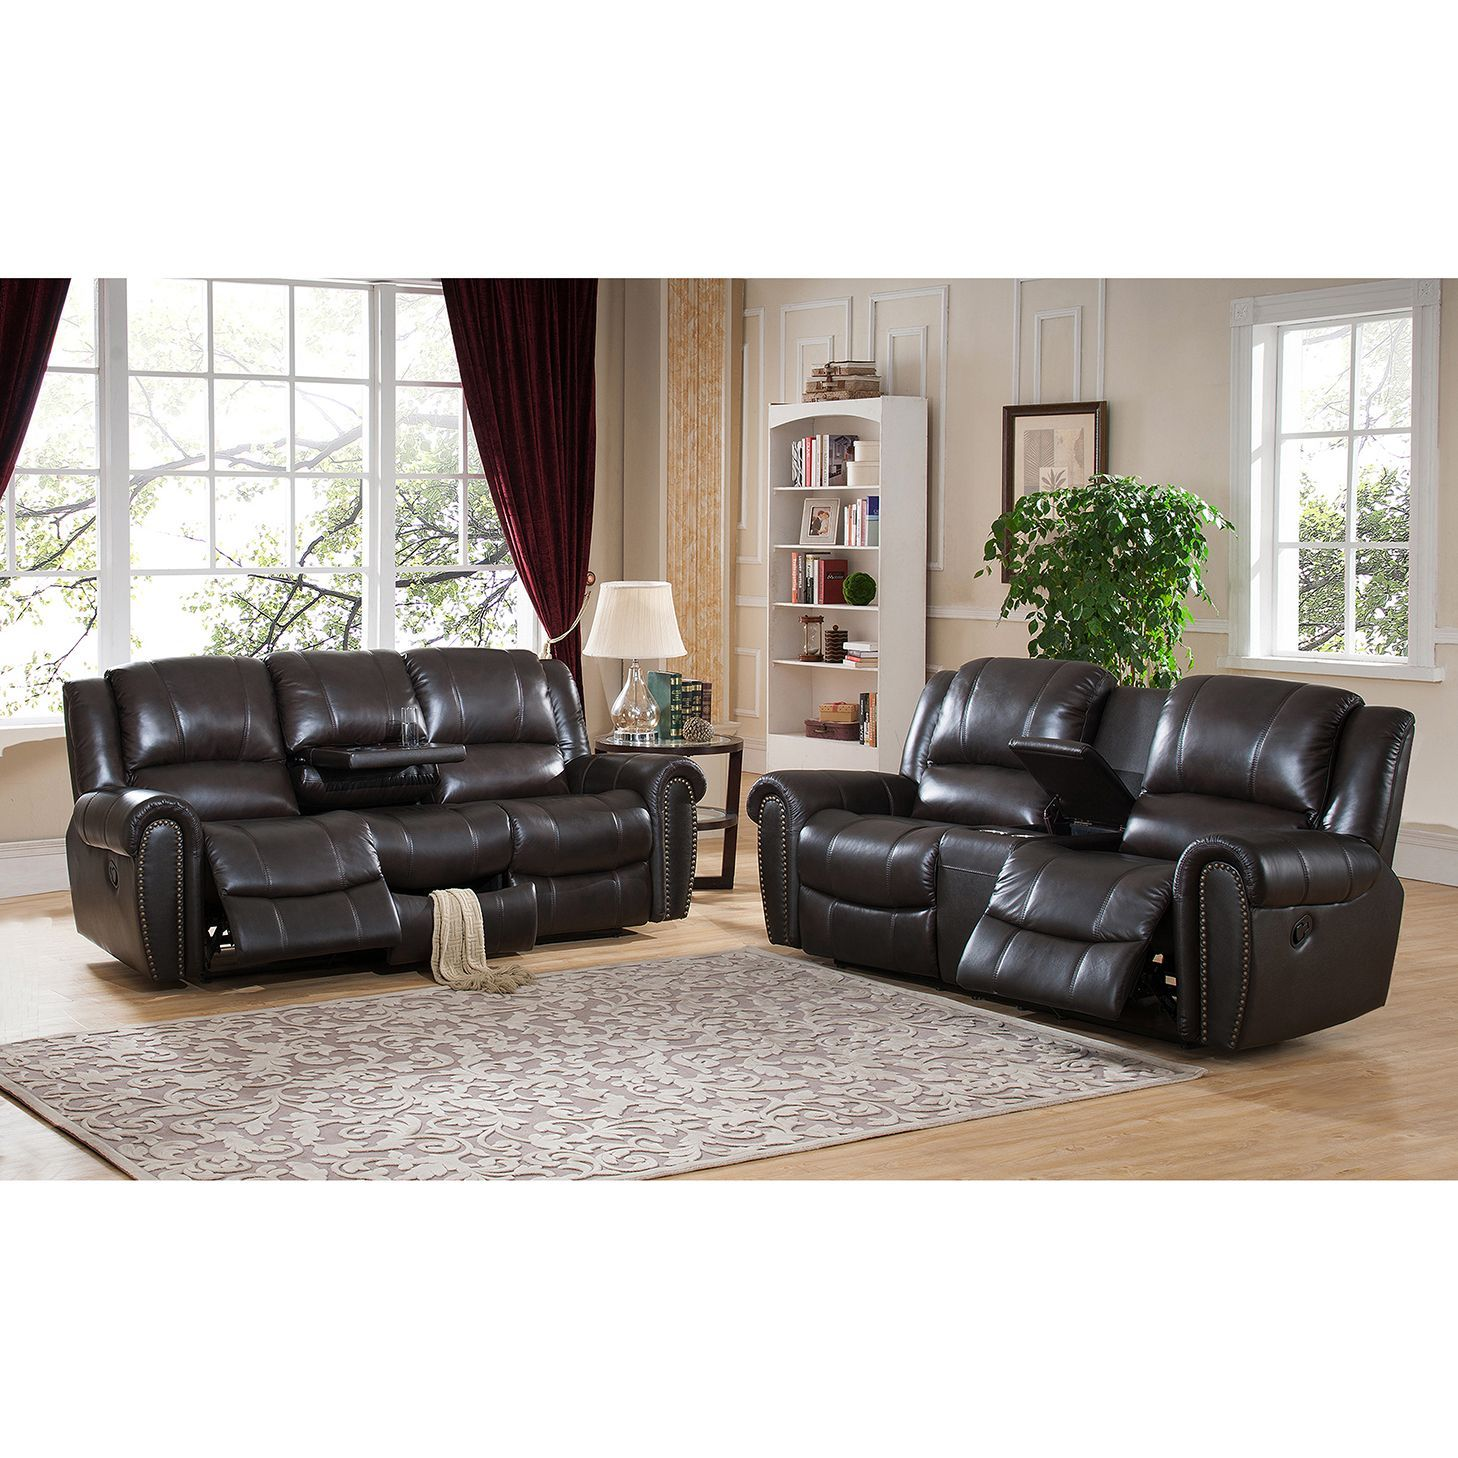 Amax Charlotte Top Grain Leather Reclining Sofa and Loveseat Set